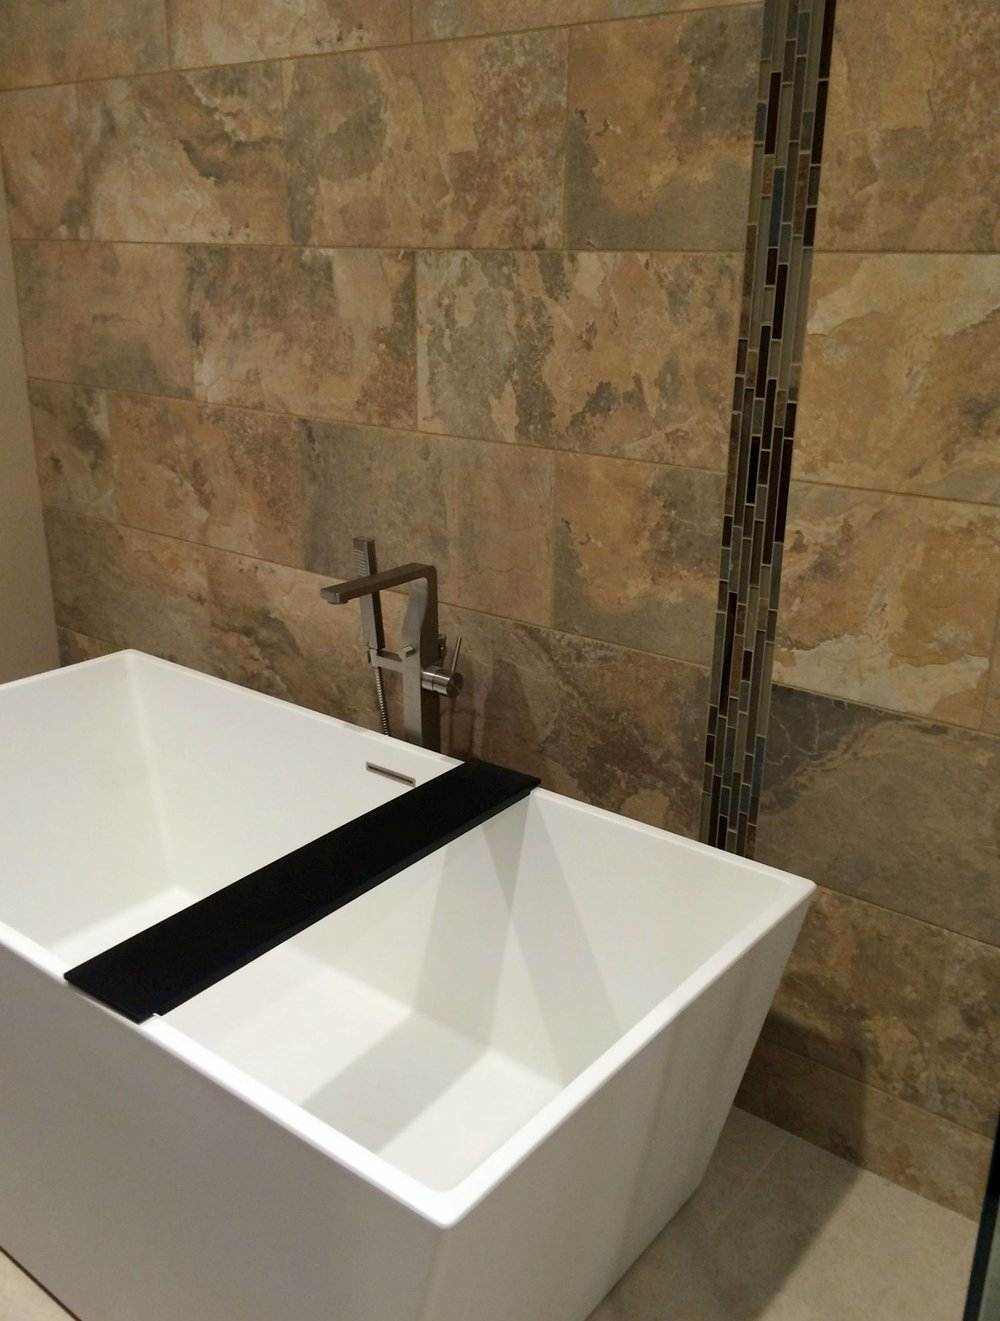 The perfect eco-friendly freestanding tub